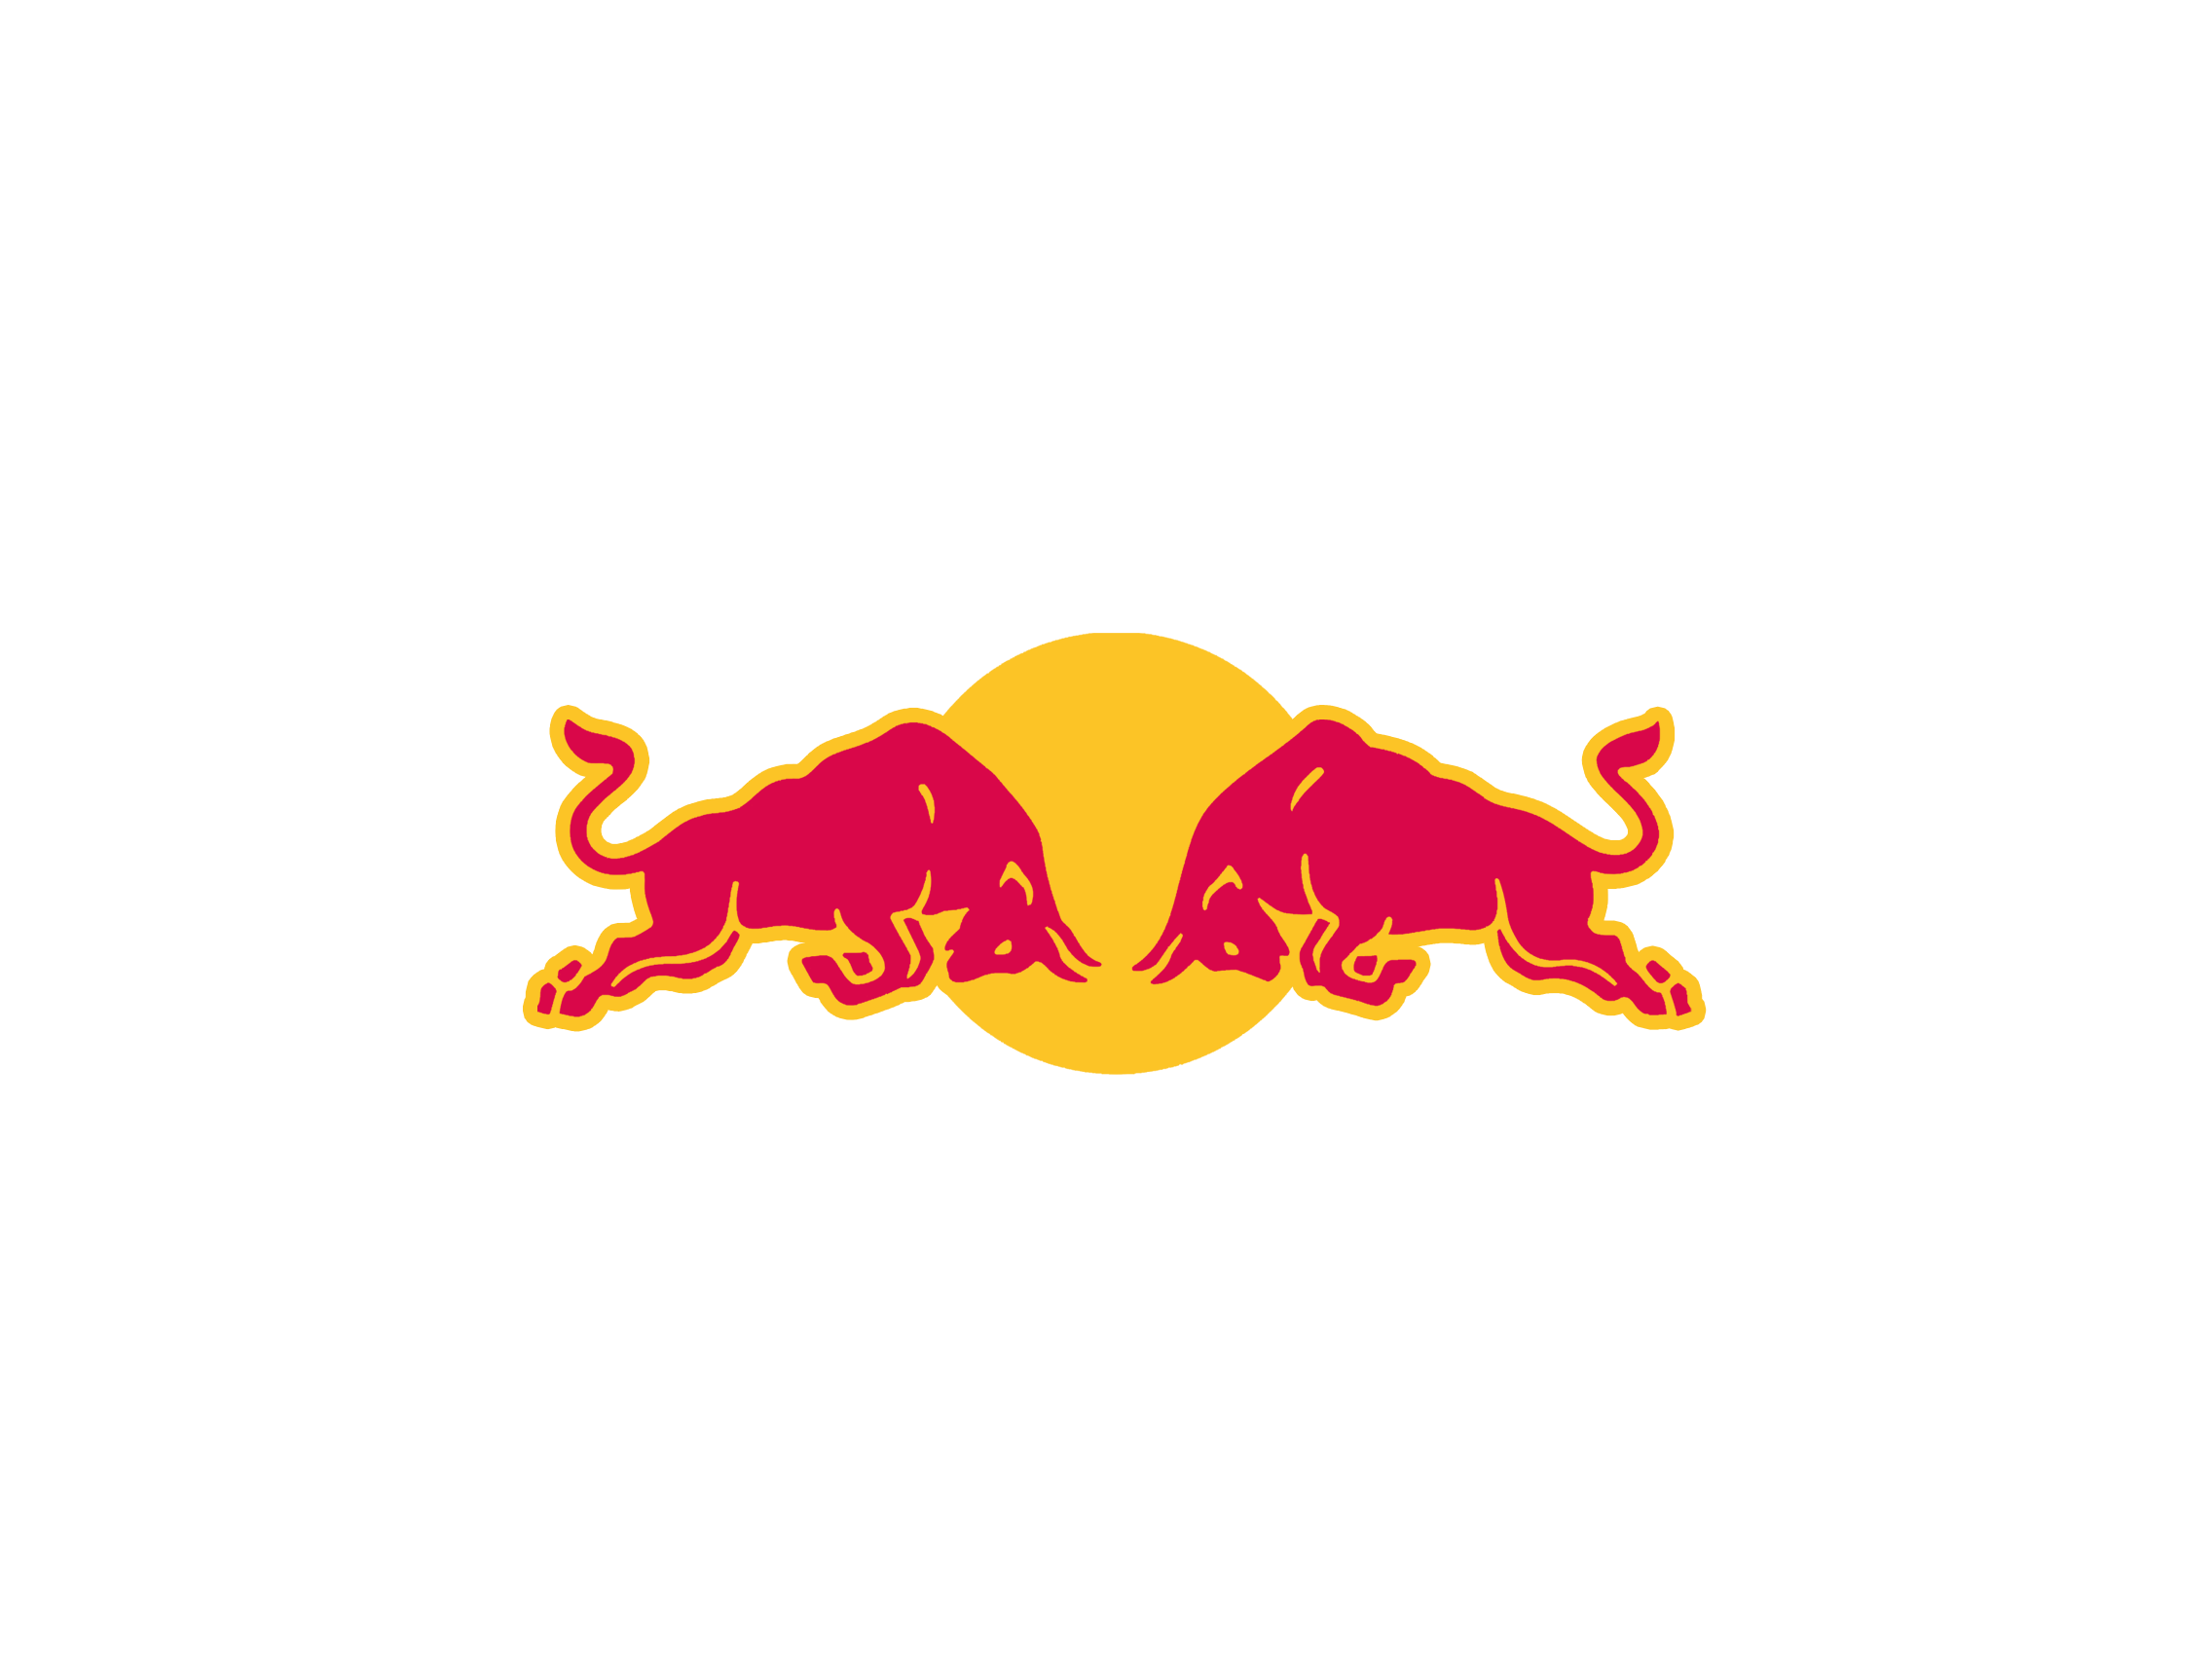 Png 2272X1704 Red Bull Logo Background - Red Bull, Transparent background PNG HD thumbnail